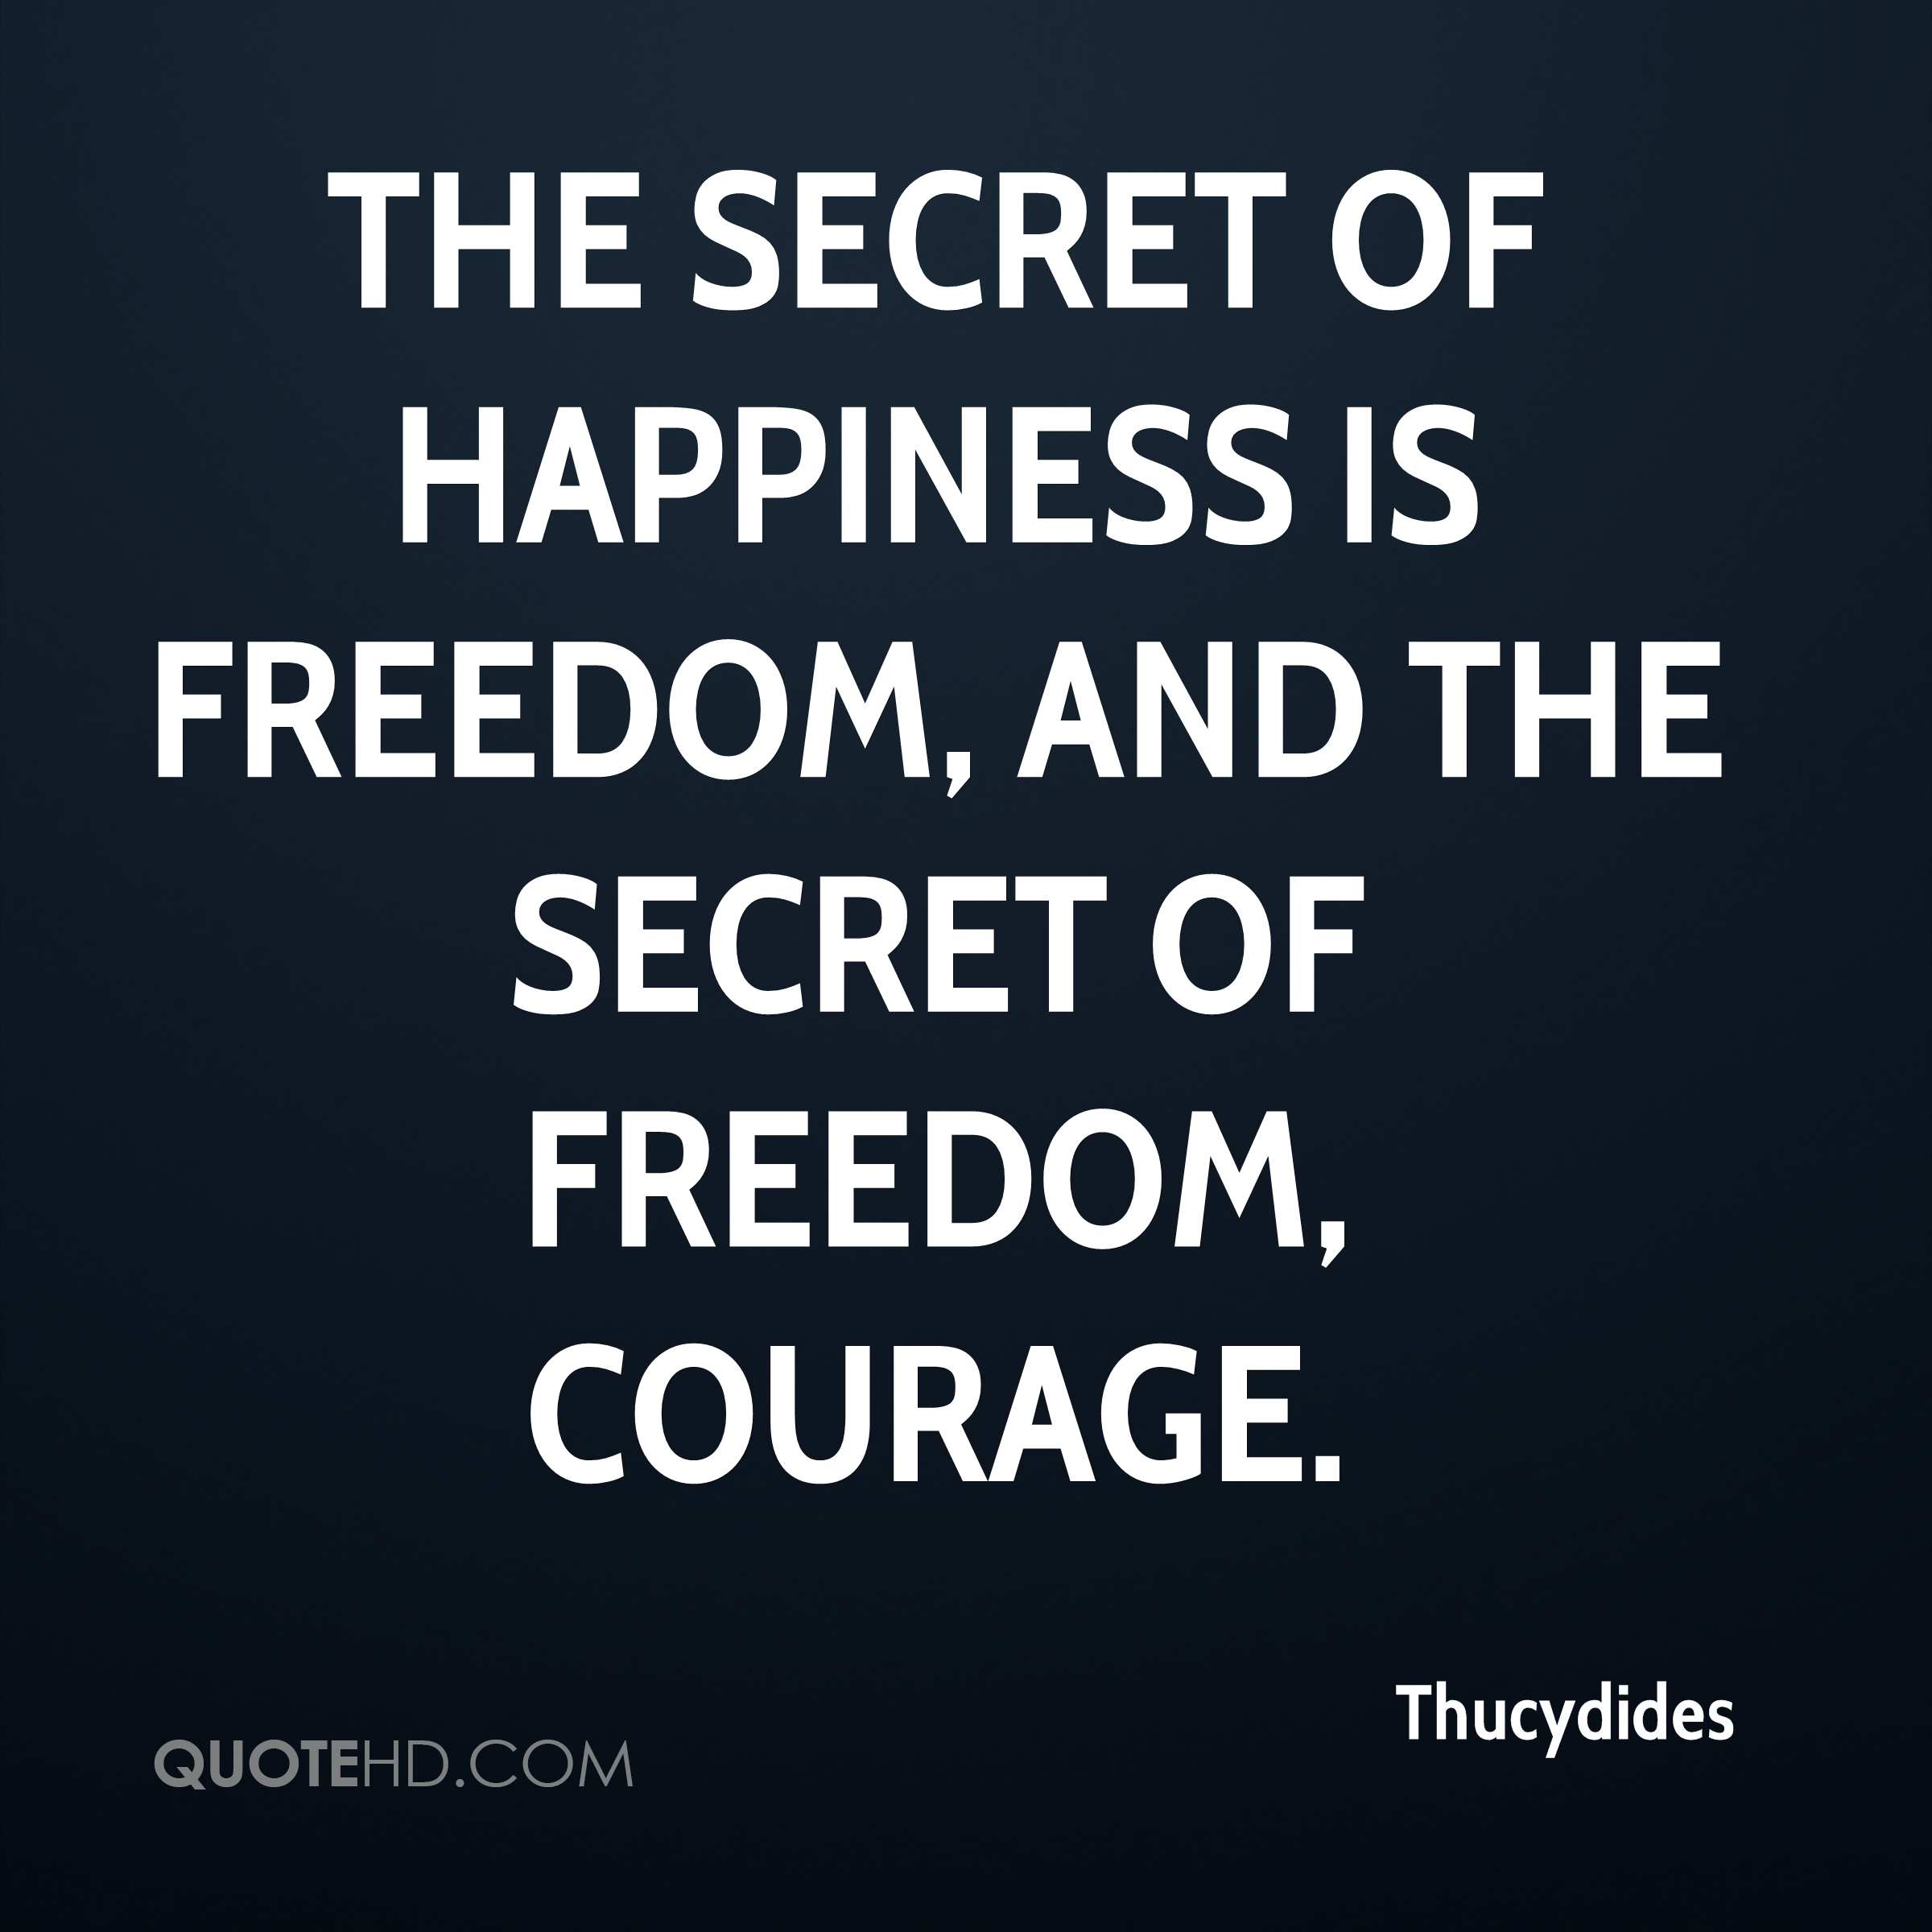 The Secret Quotes Thucydides Quotes  Quotehd